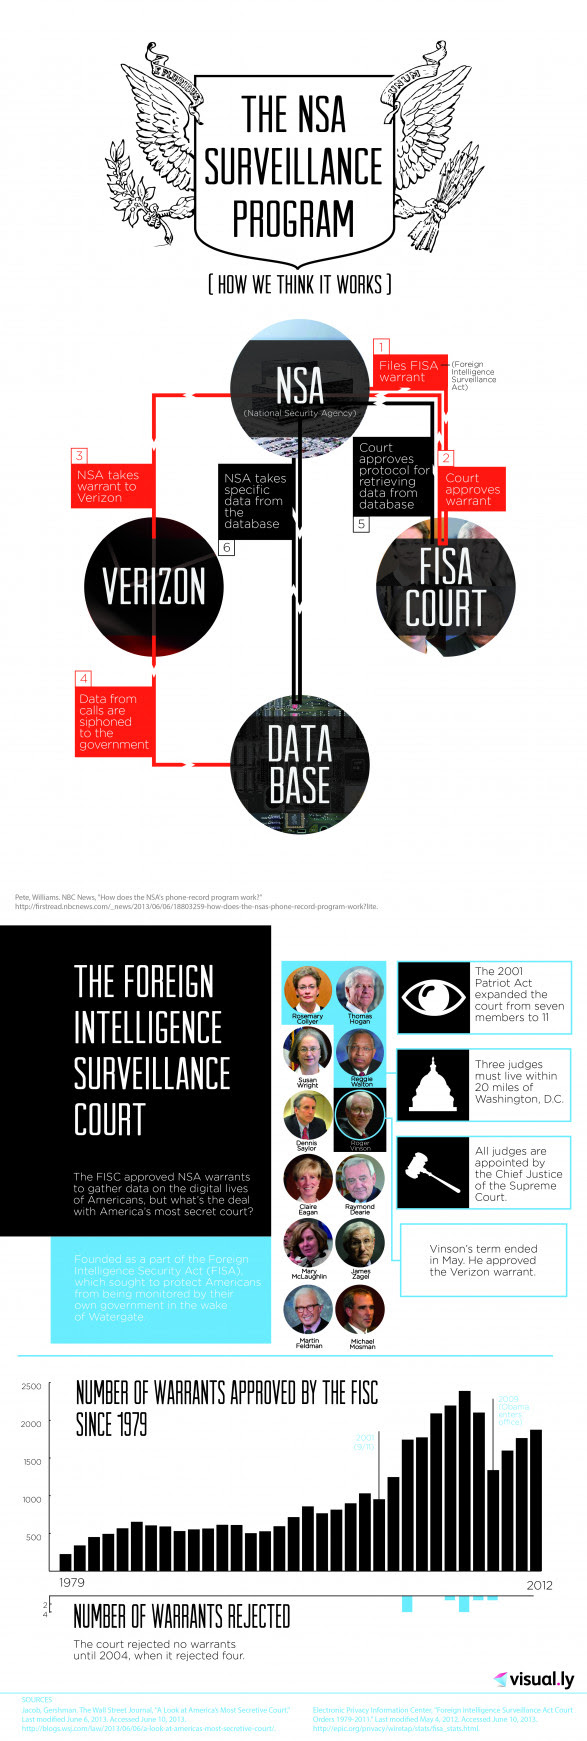 The NSA and the FISC